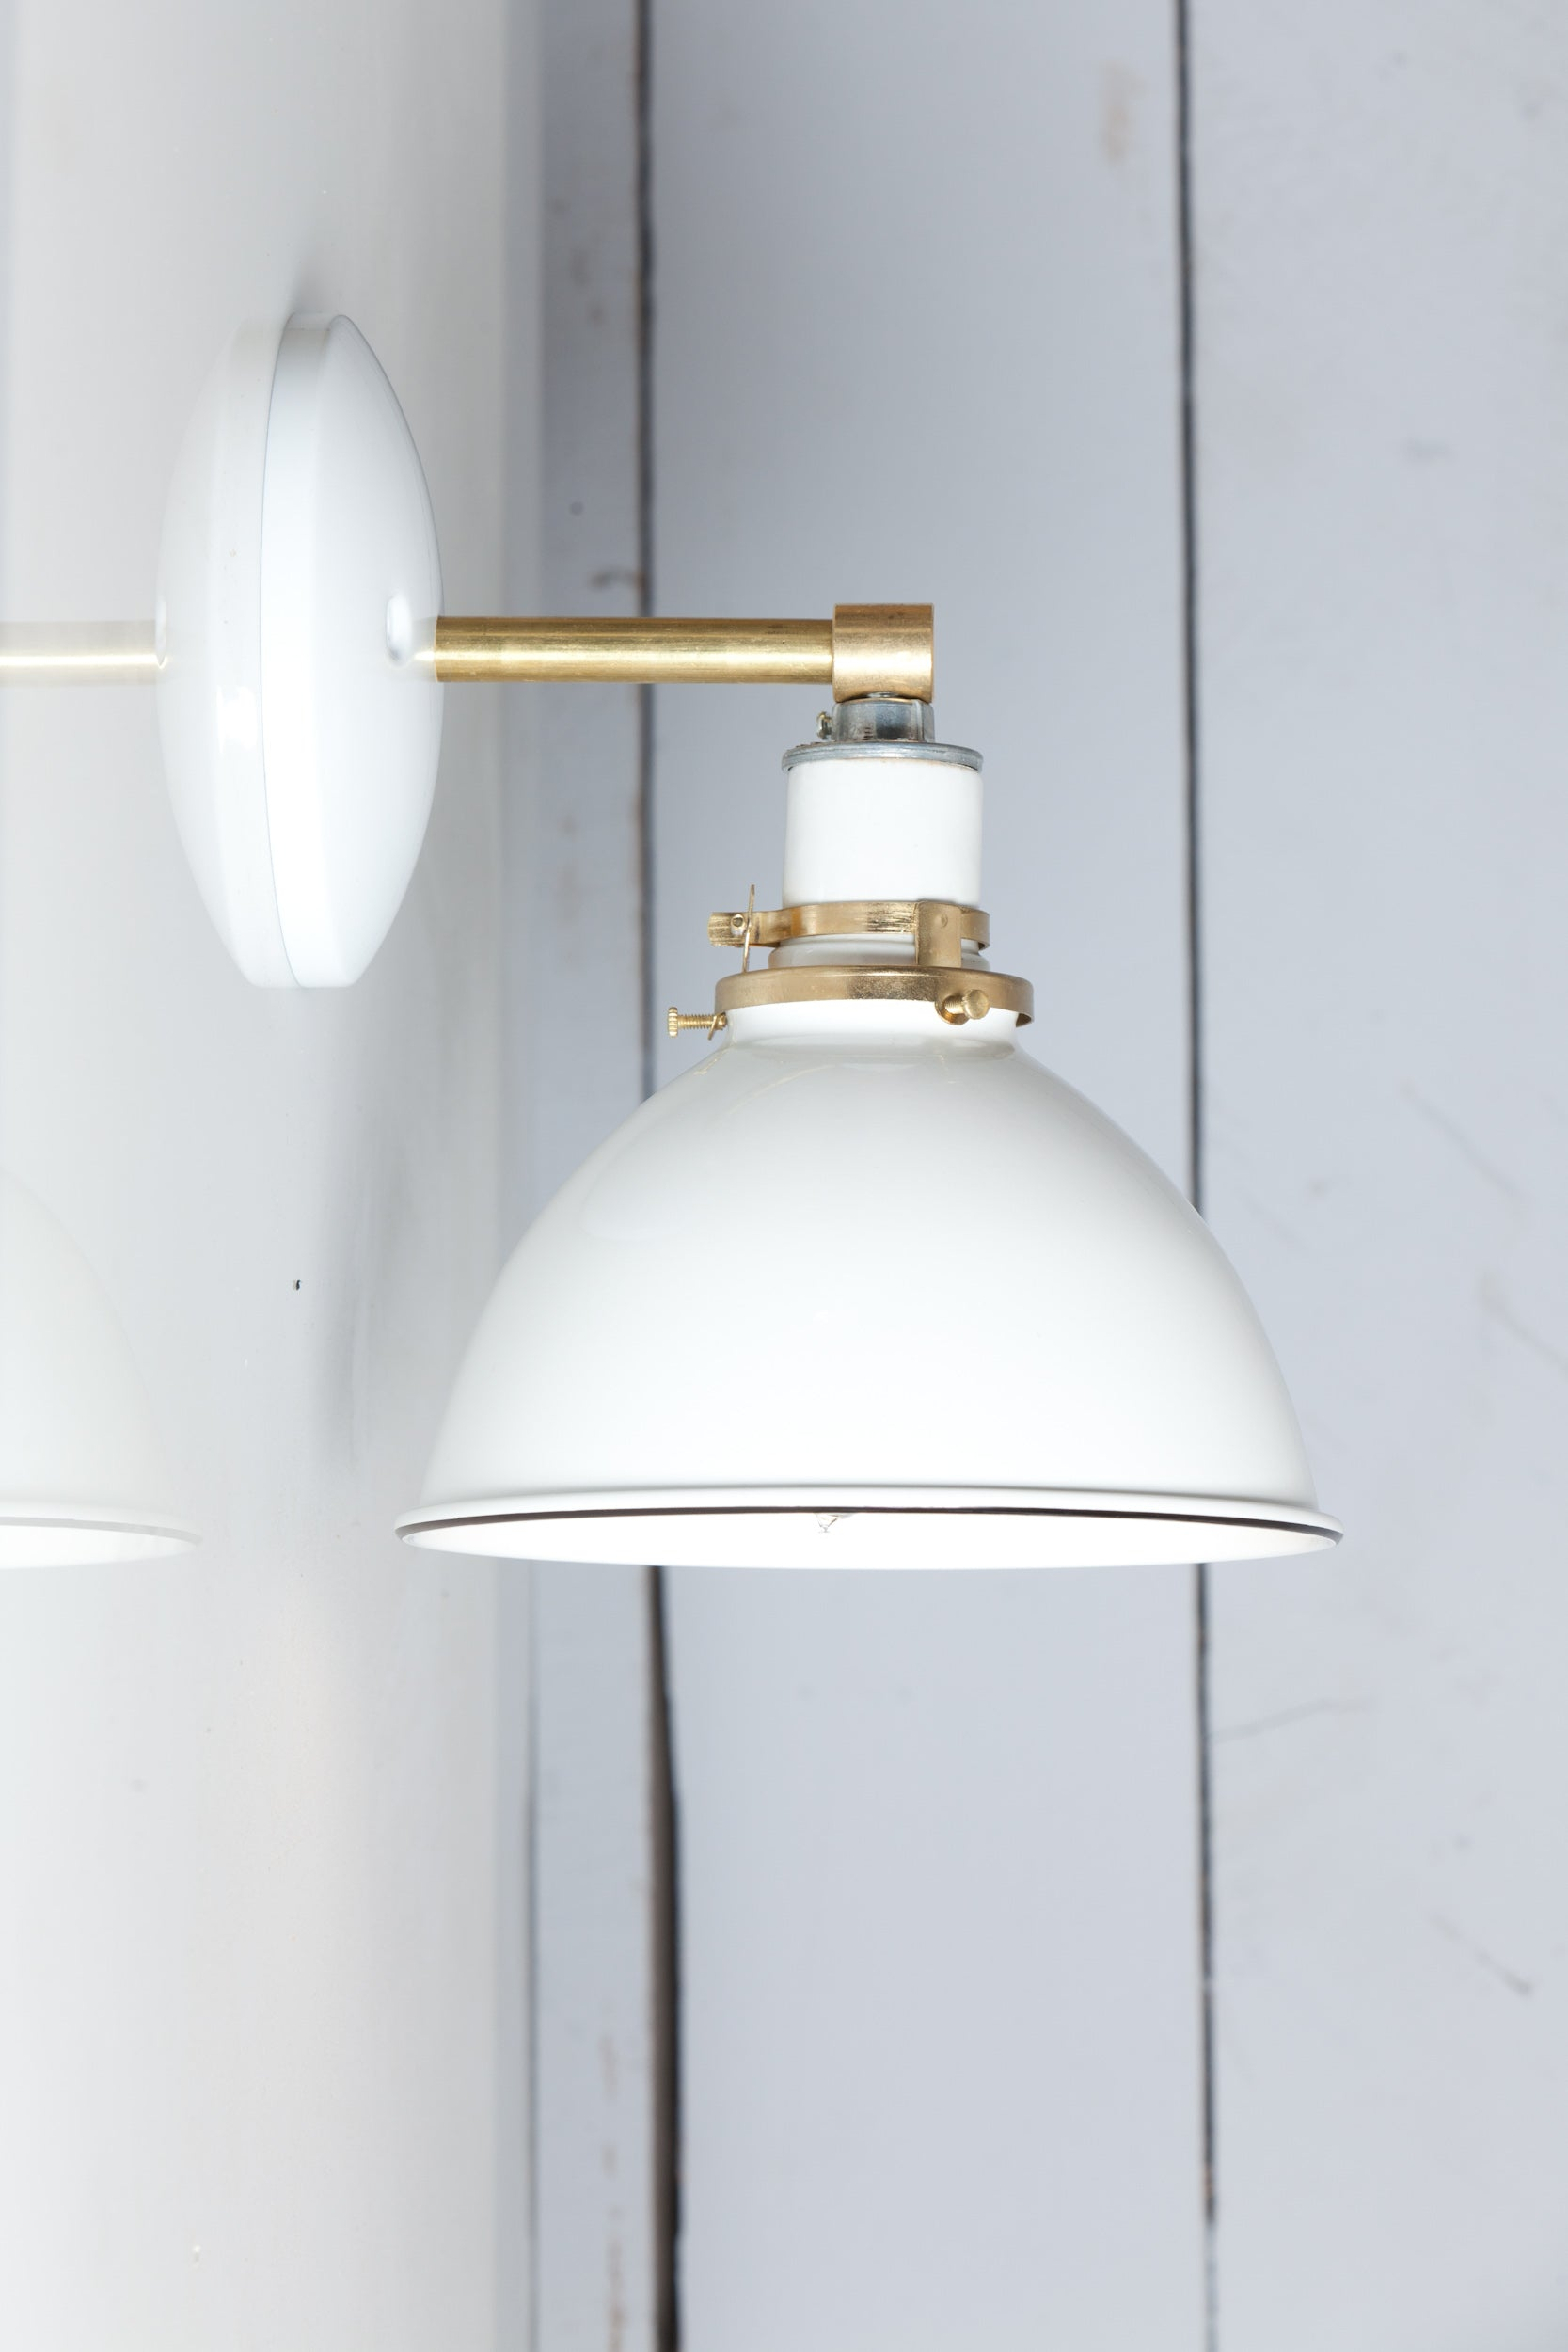 White Shade Brass Wall Sconce Light Industrial Light Electric